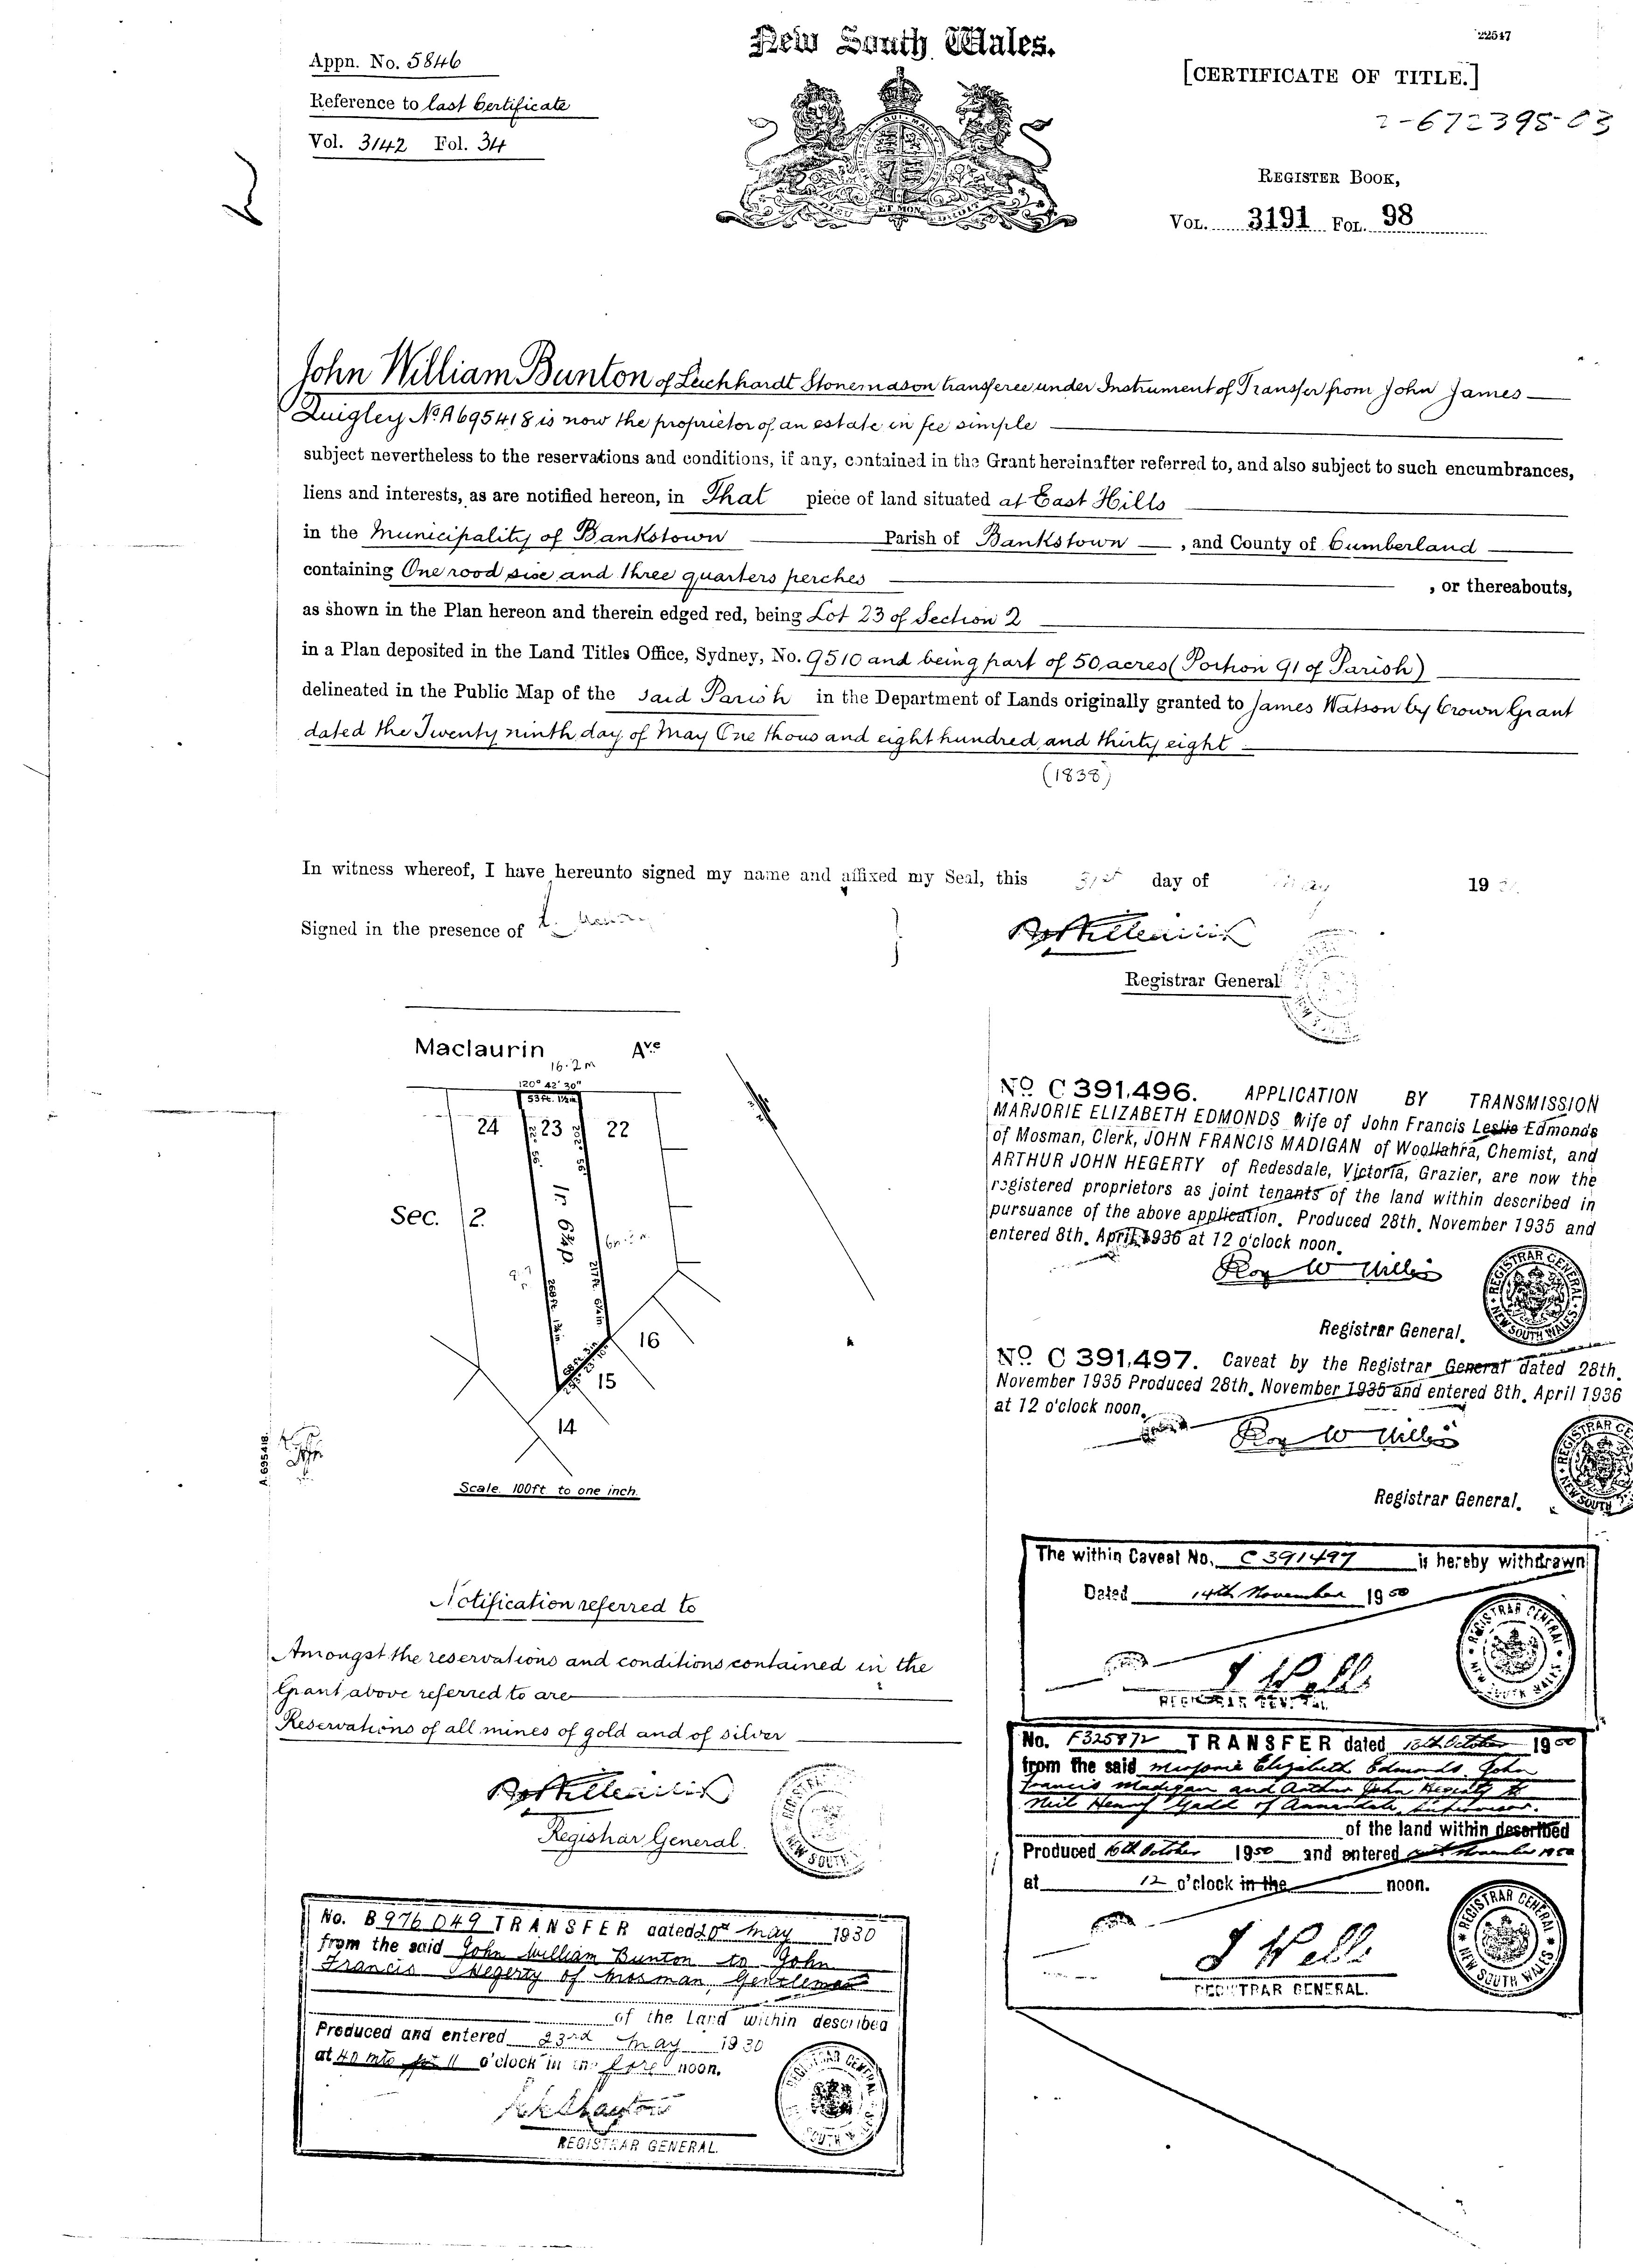 Theft Of Our Land Certificate Of Title By The Commonwealth Bank